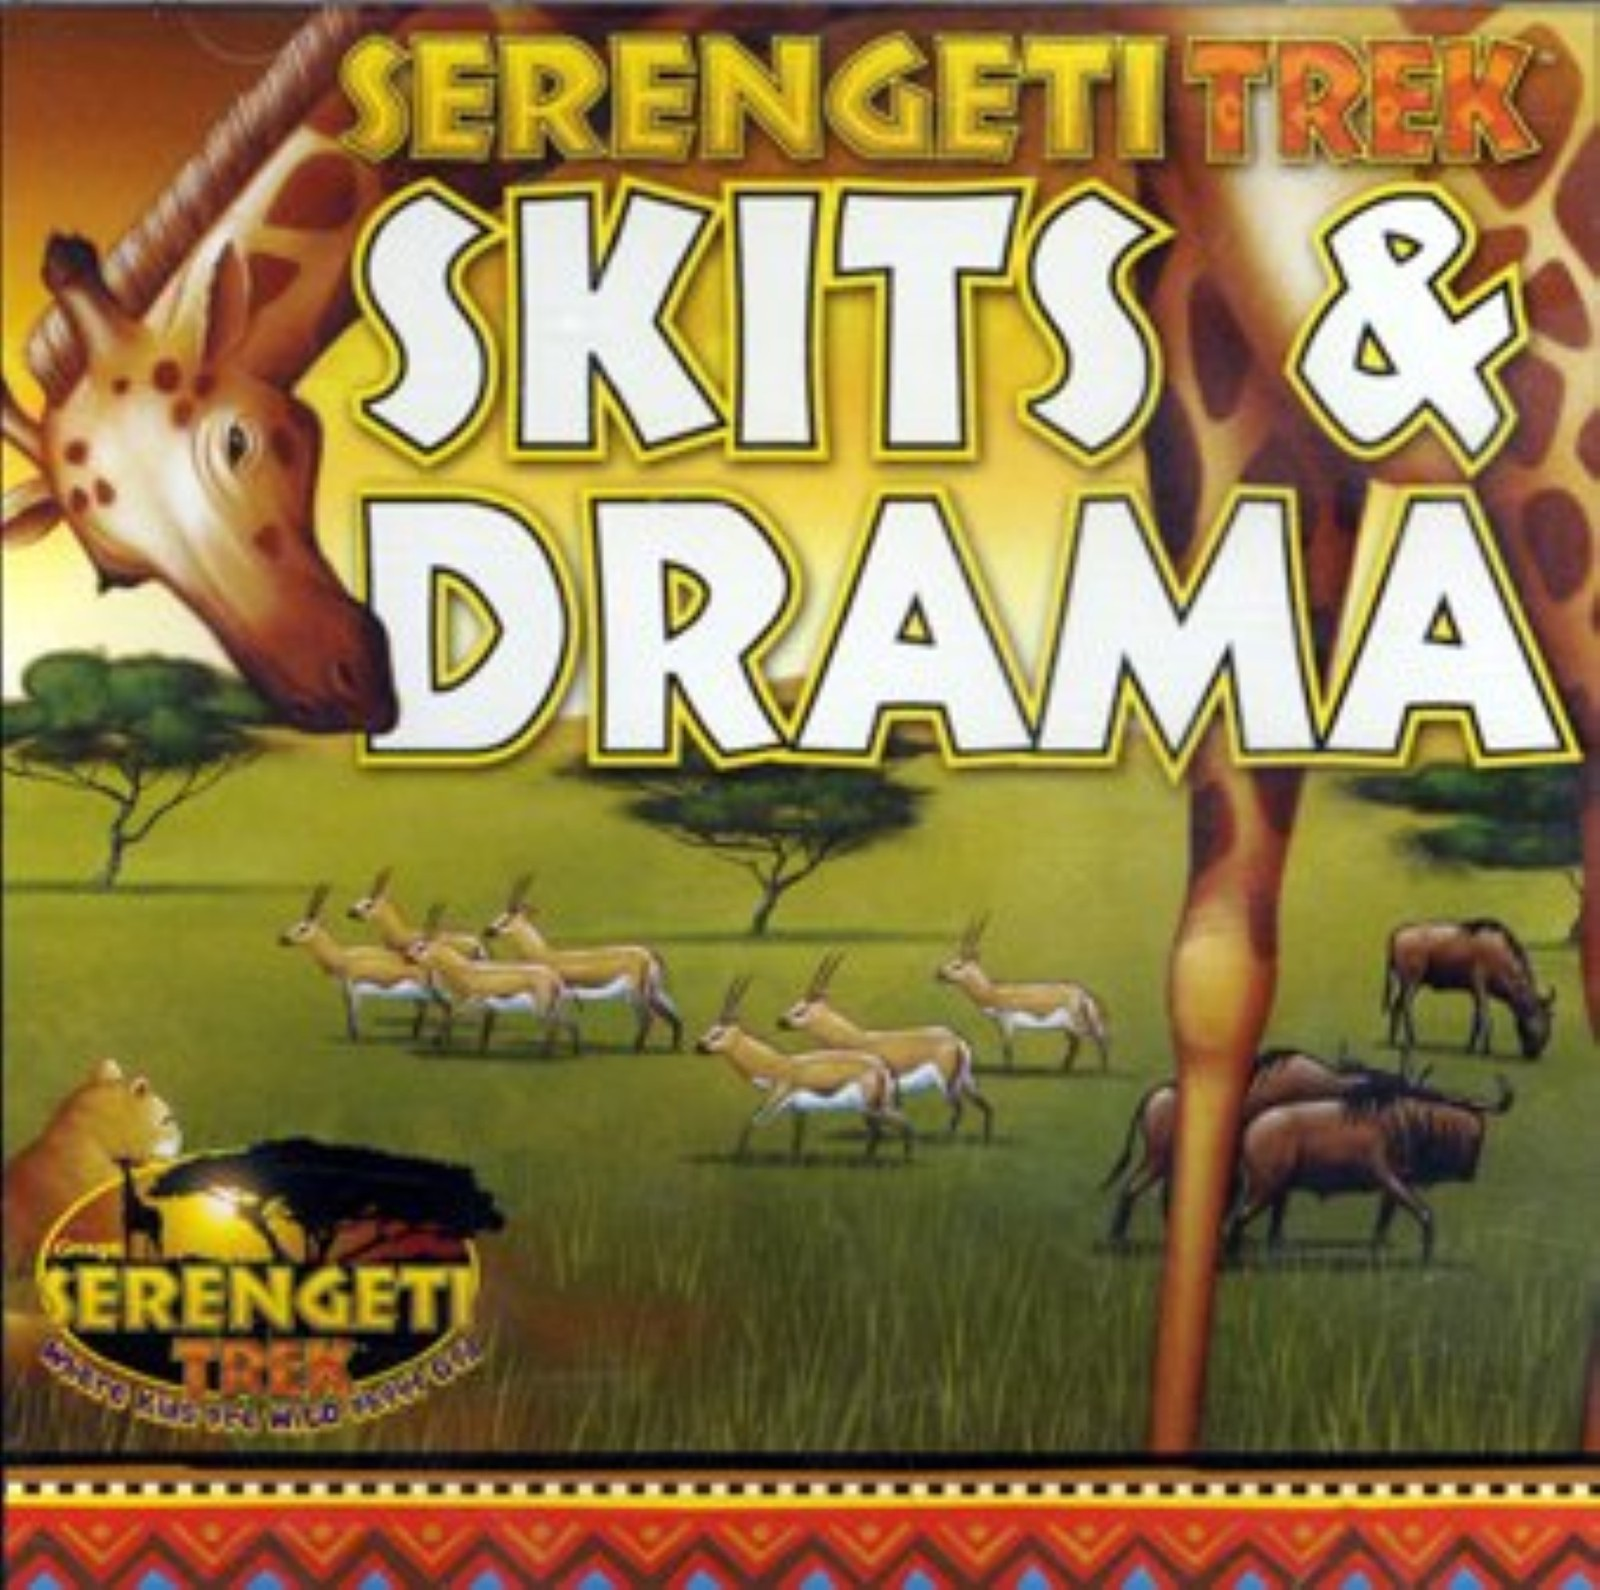 Serengeti Trek - Skits & Drama Cd